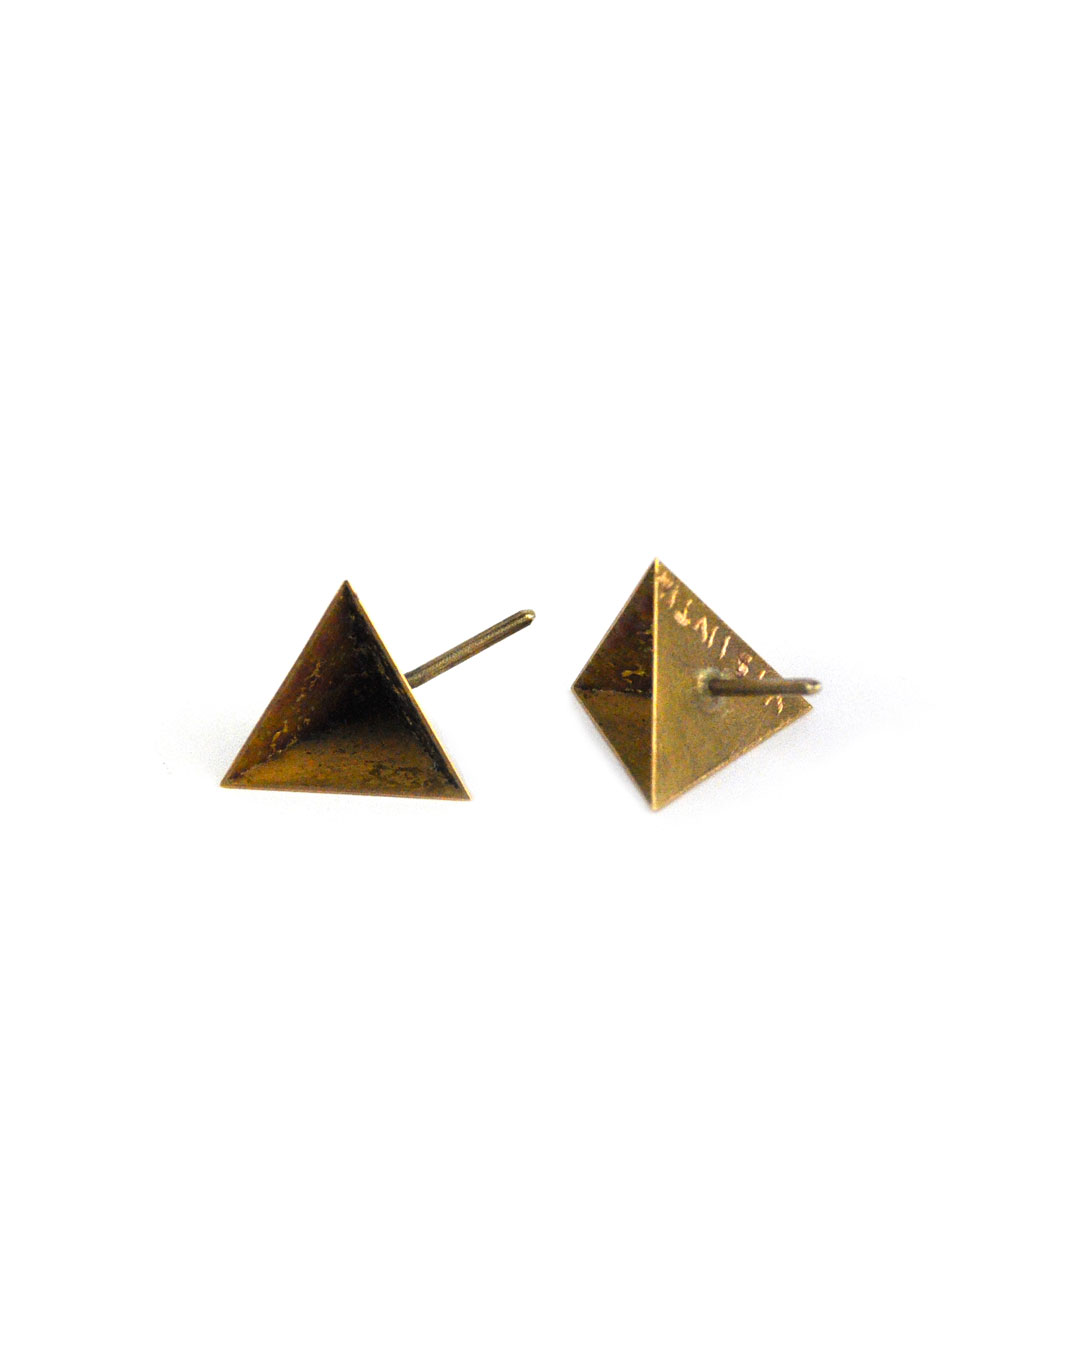 Graziano Visintin, untitled, 2010, earrings; gold, enamel, gold leaf, 7 x 7 x 7 mm, €3630